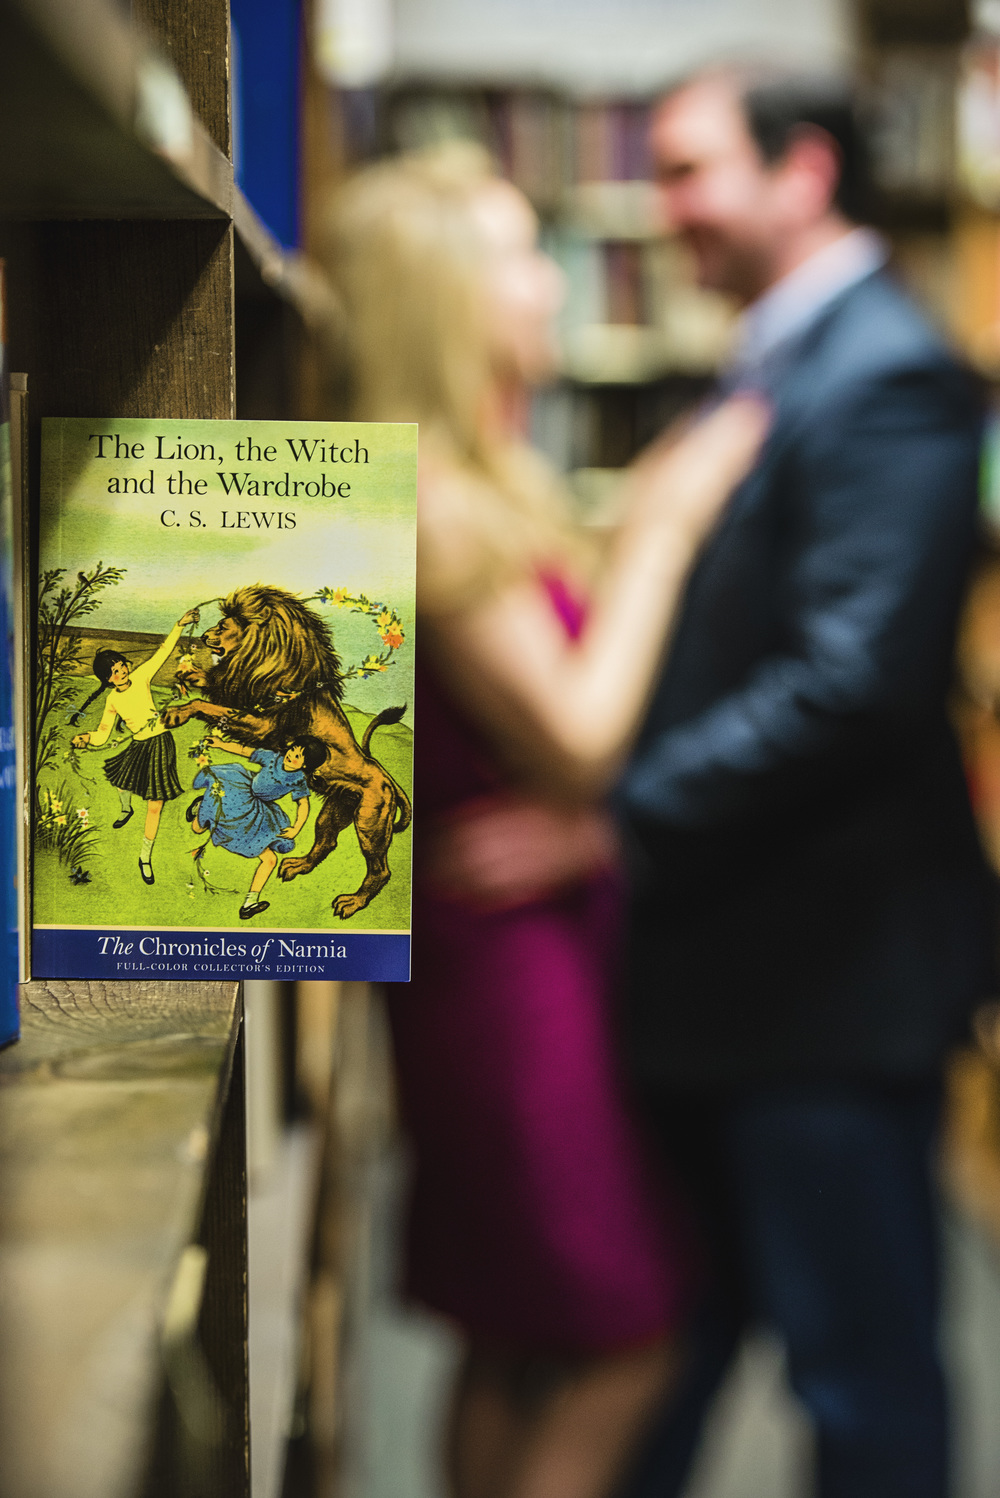 bookstore_fairytale_downtown_engagement_session_lynchburg_va009.jpg